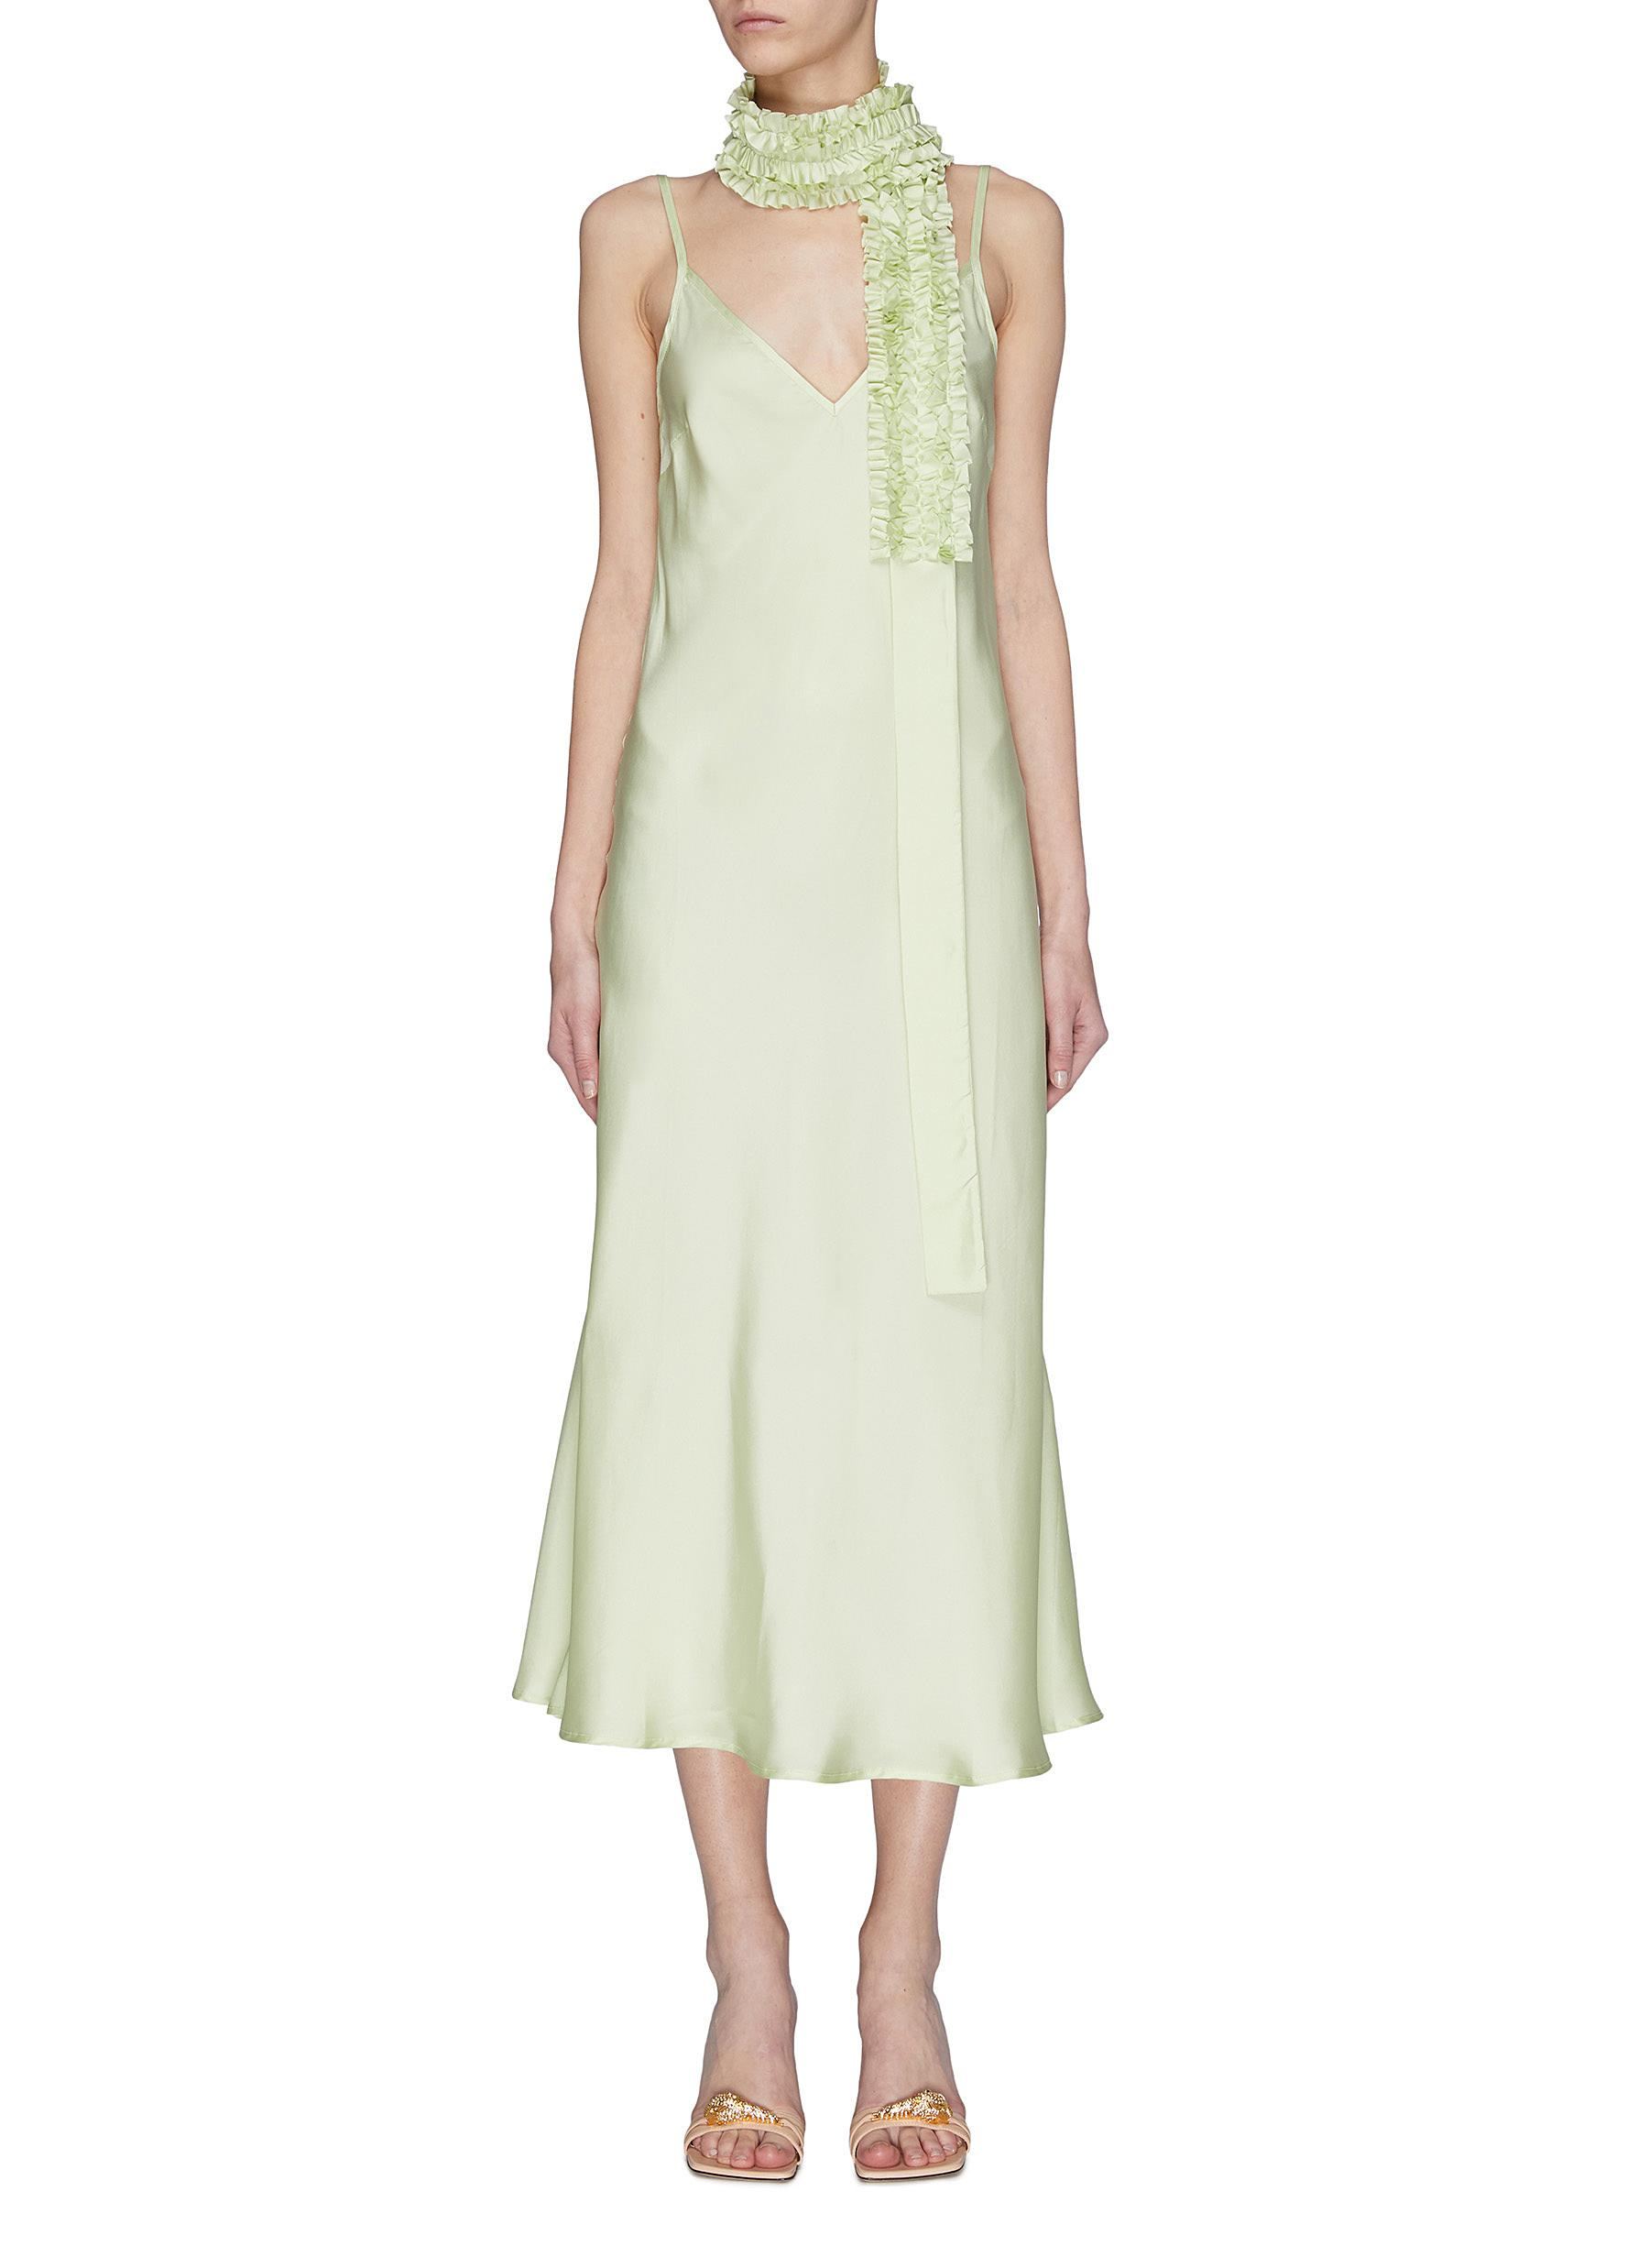 Buy Maggie Marilyn Dresses 'Stand Tall' ruche scarf slip dress